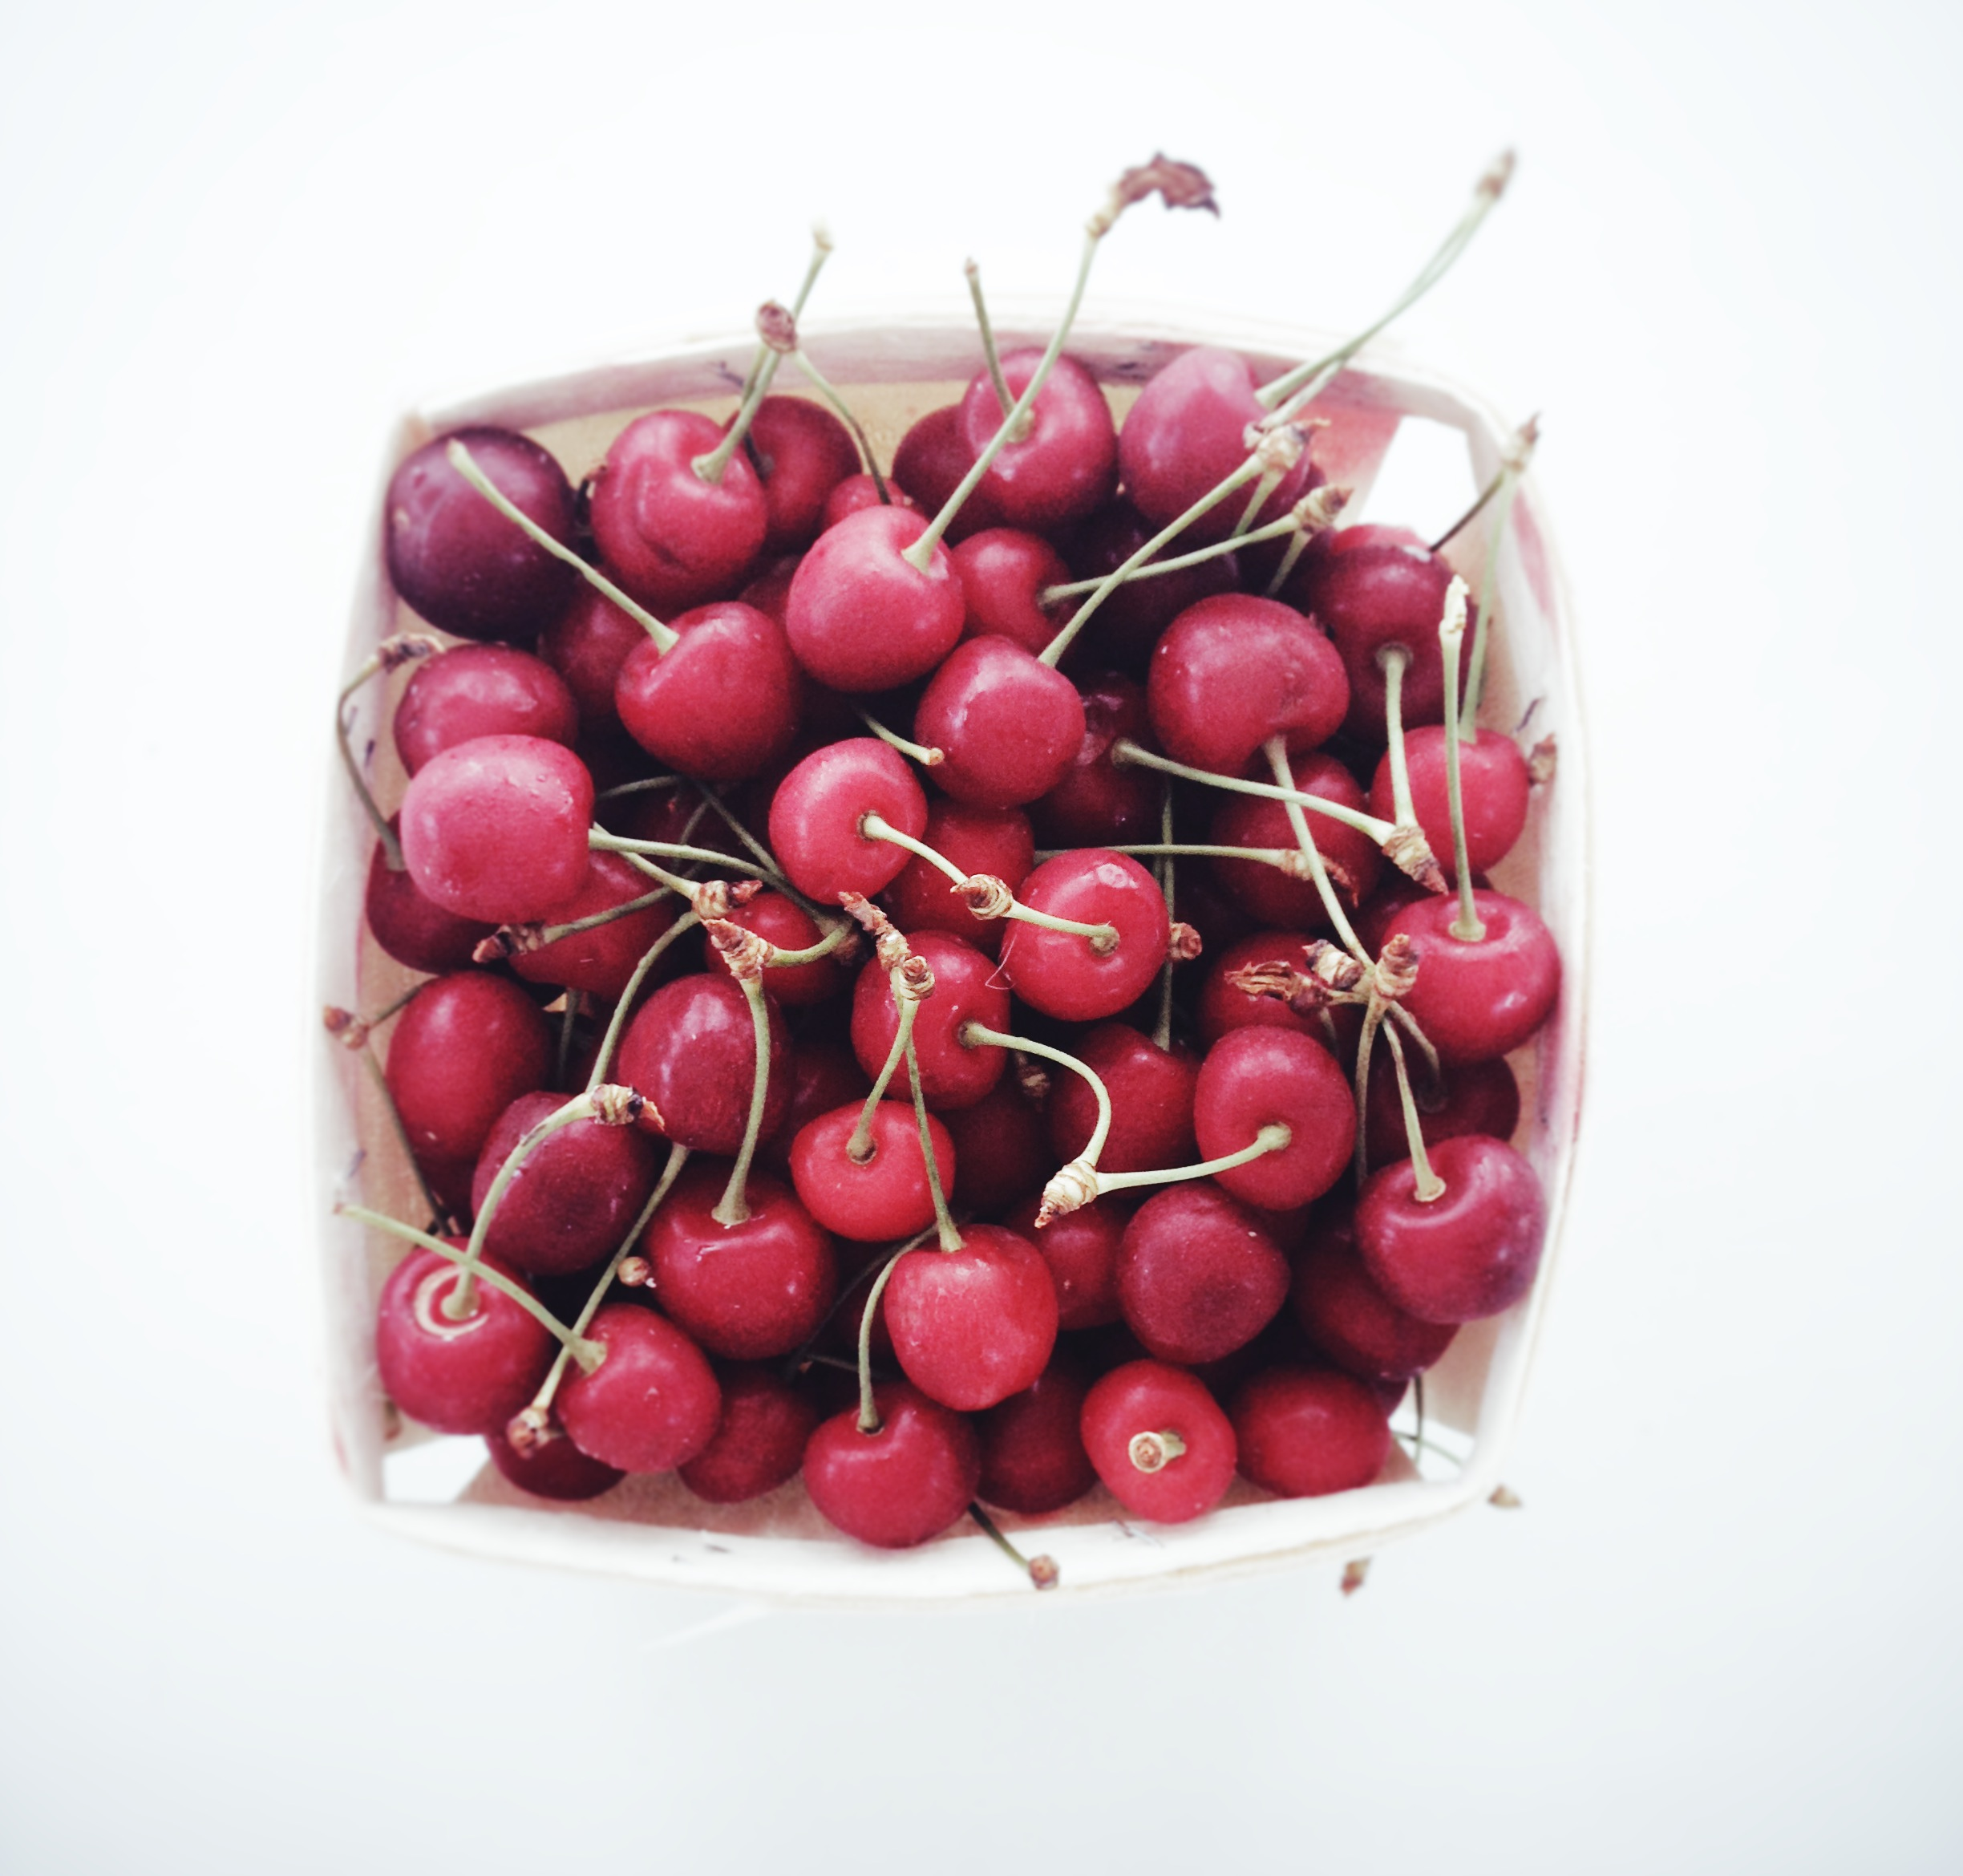 Did I mention cherries?